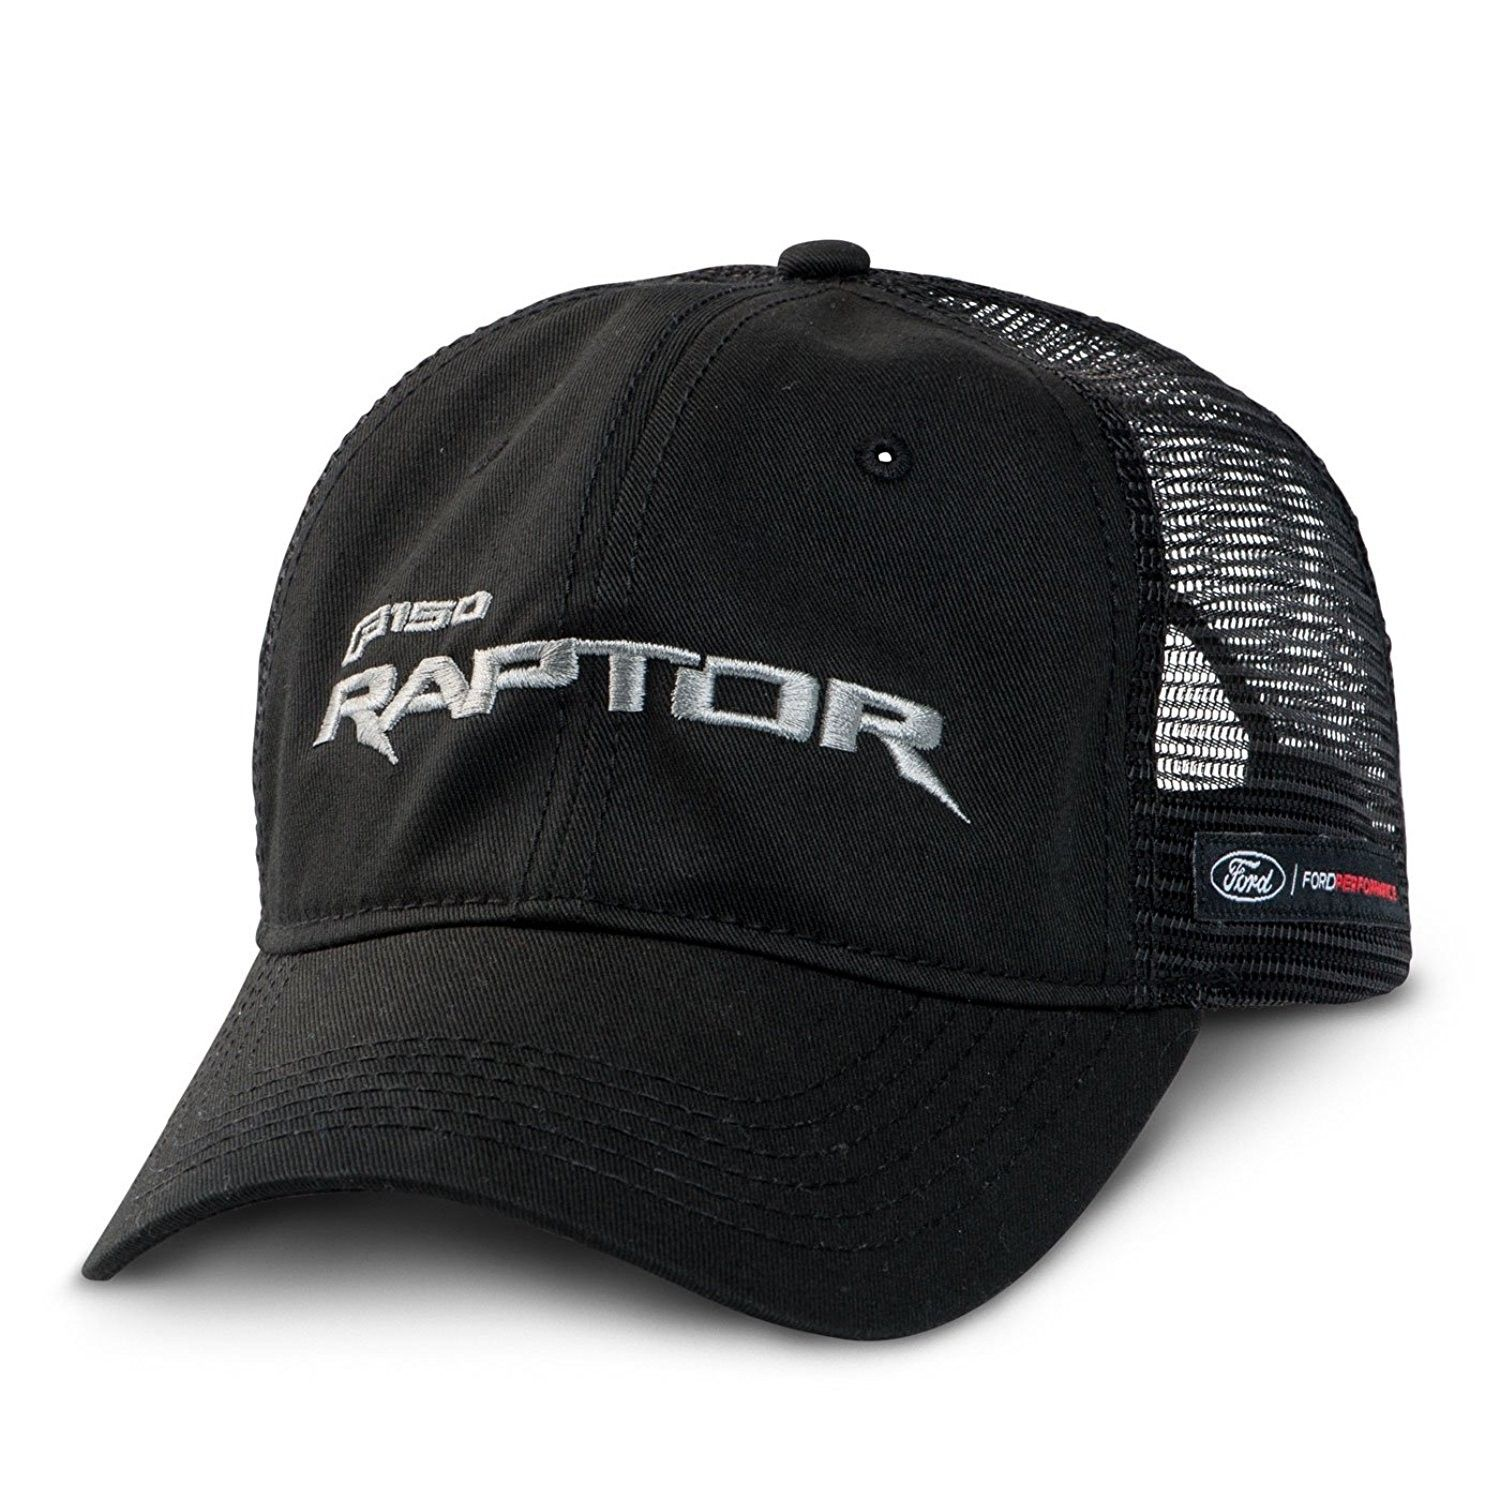 Bundle with Driving Style Decal Gregs Automotive Ford F-Series Trucks Hat Cap in Black